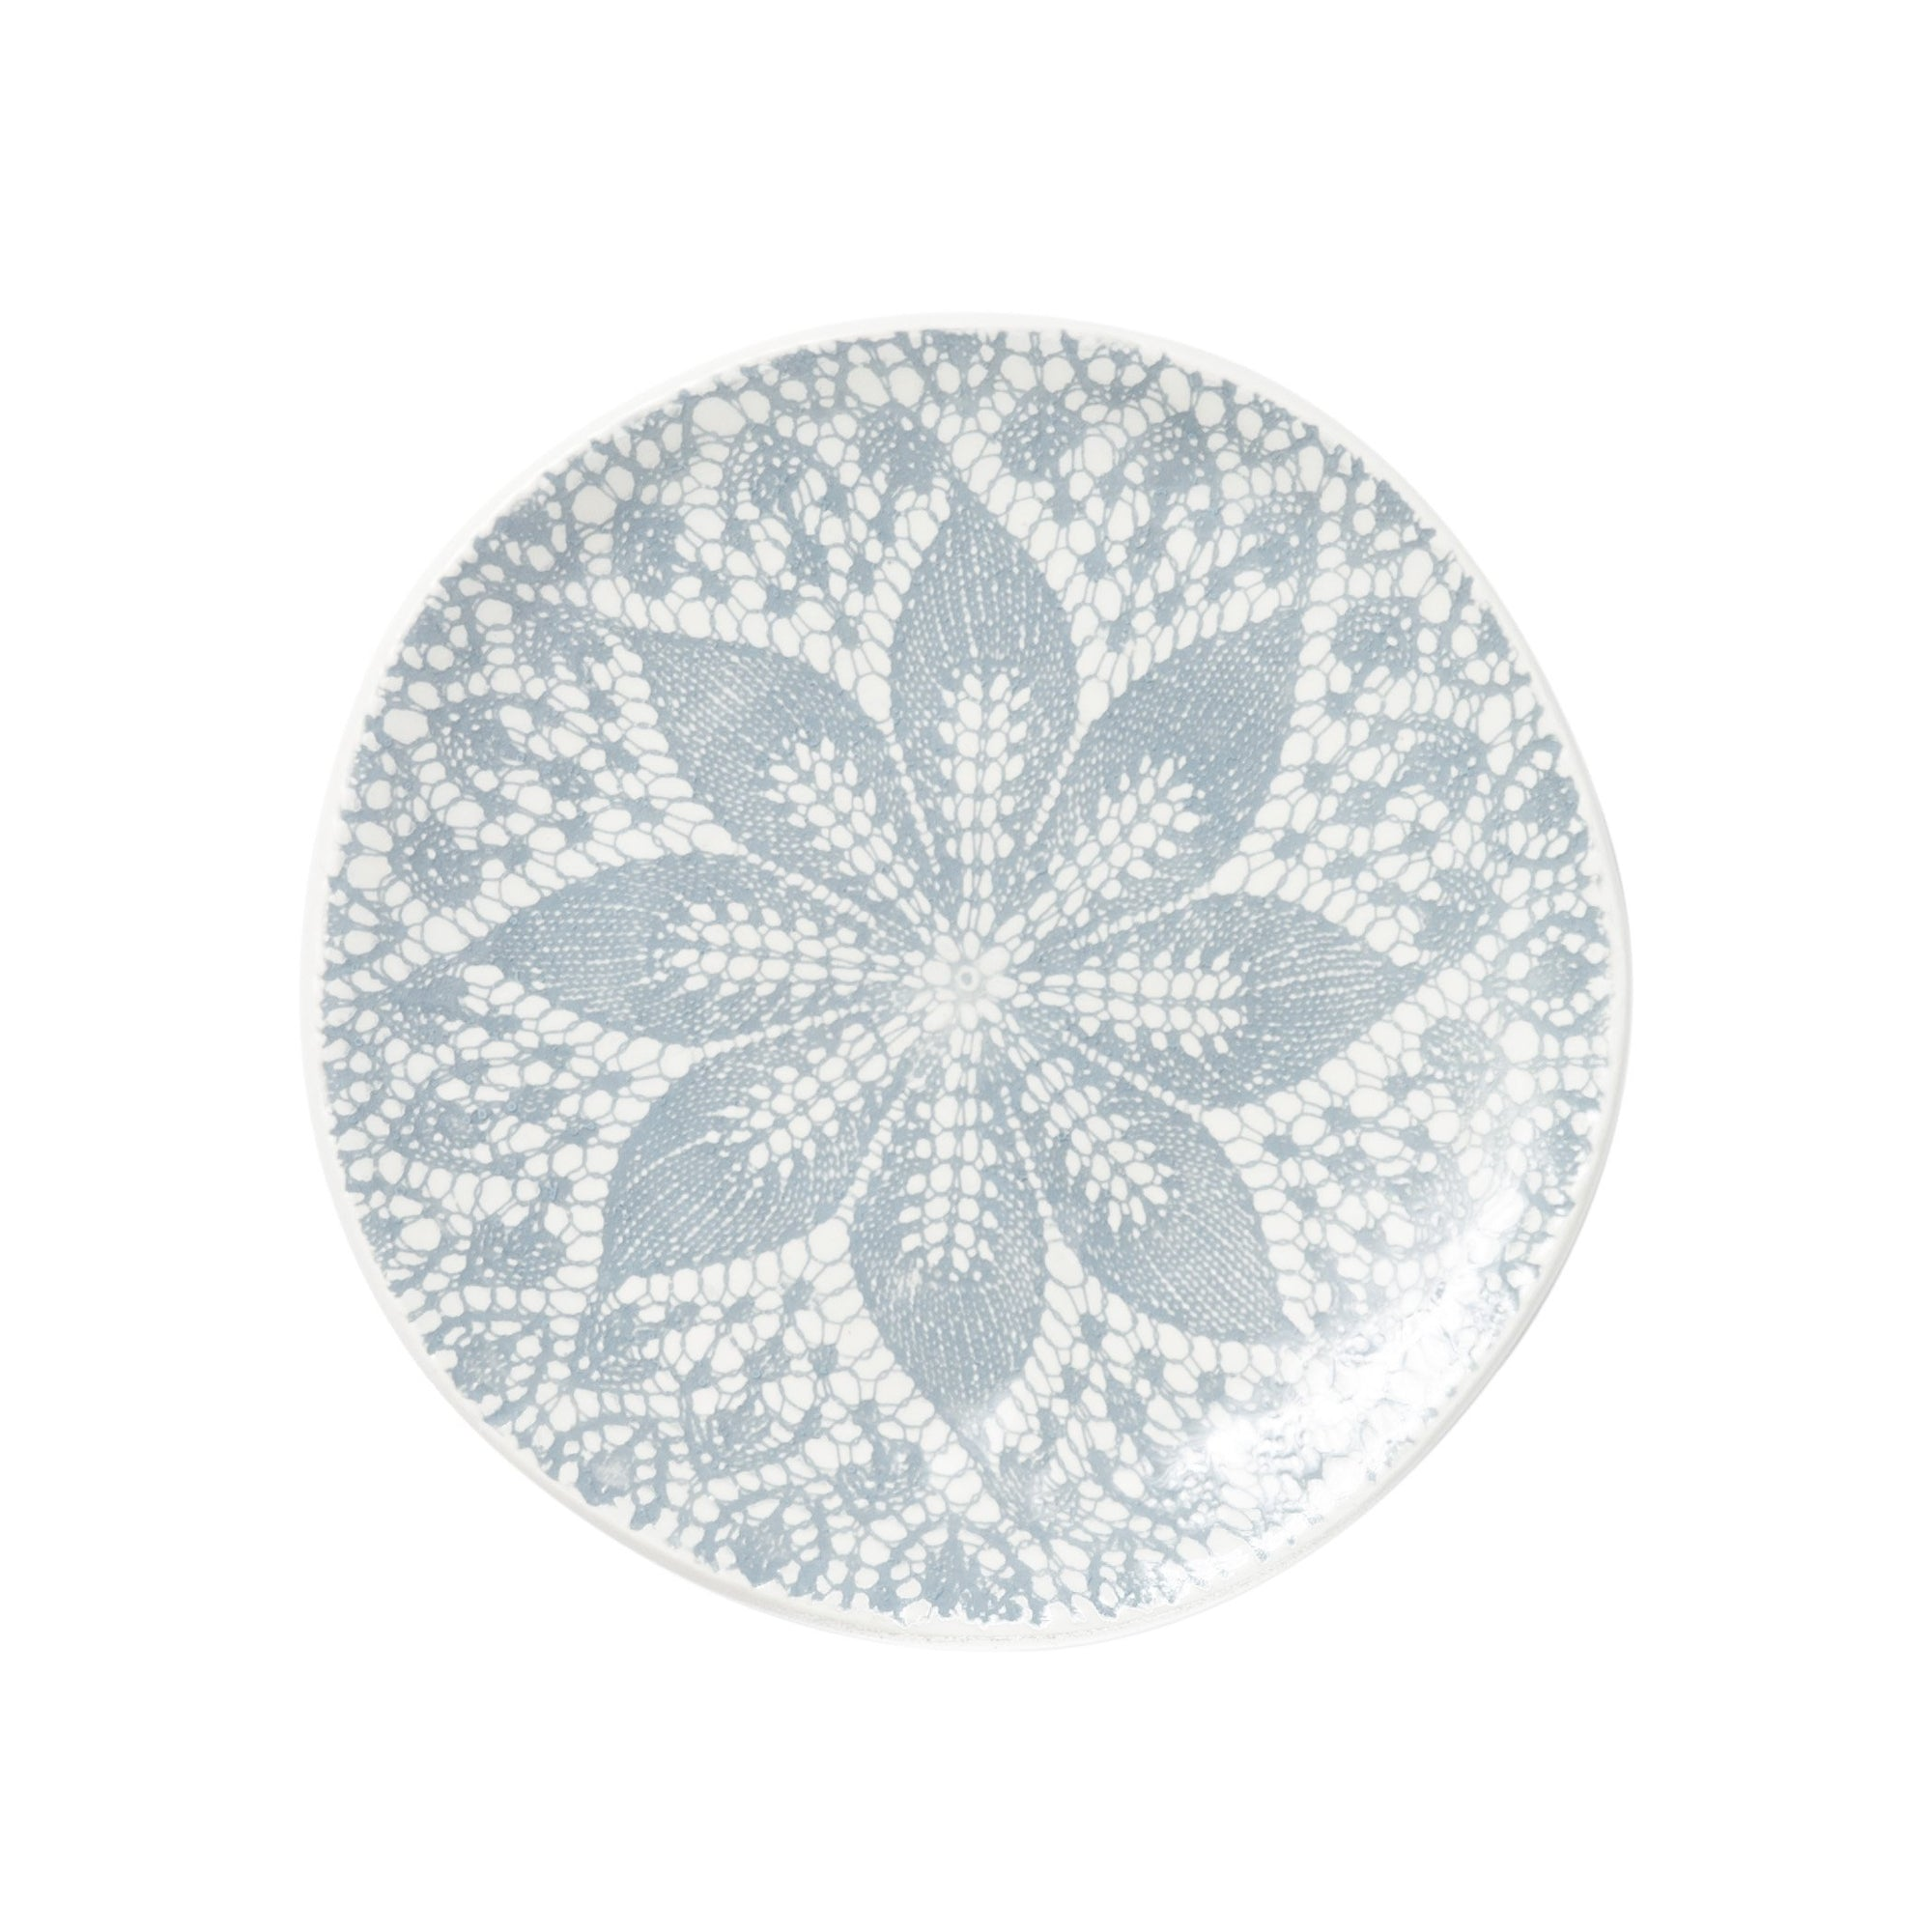 Lace Gray Cocktail Plates - Set of 4 by VIETRI